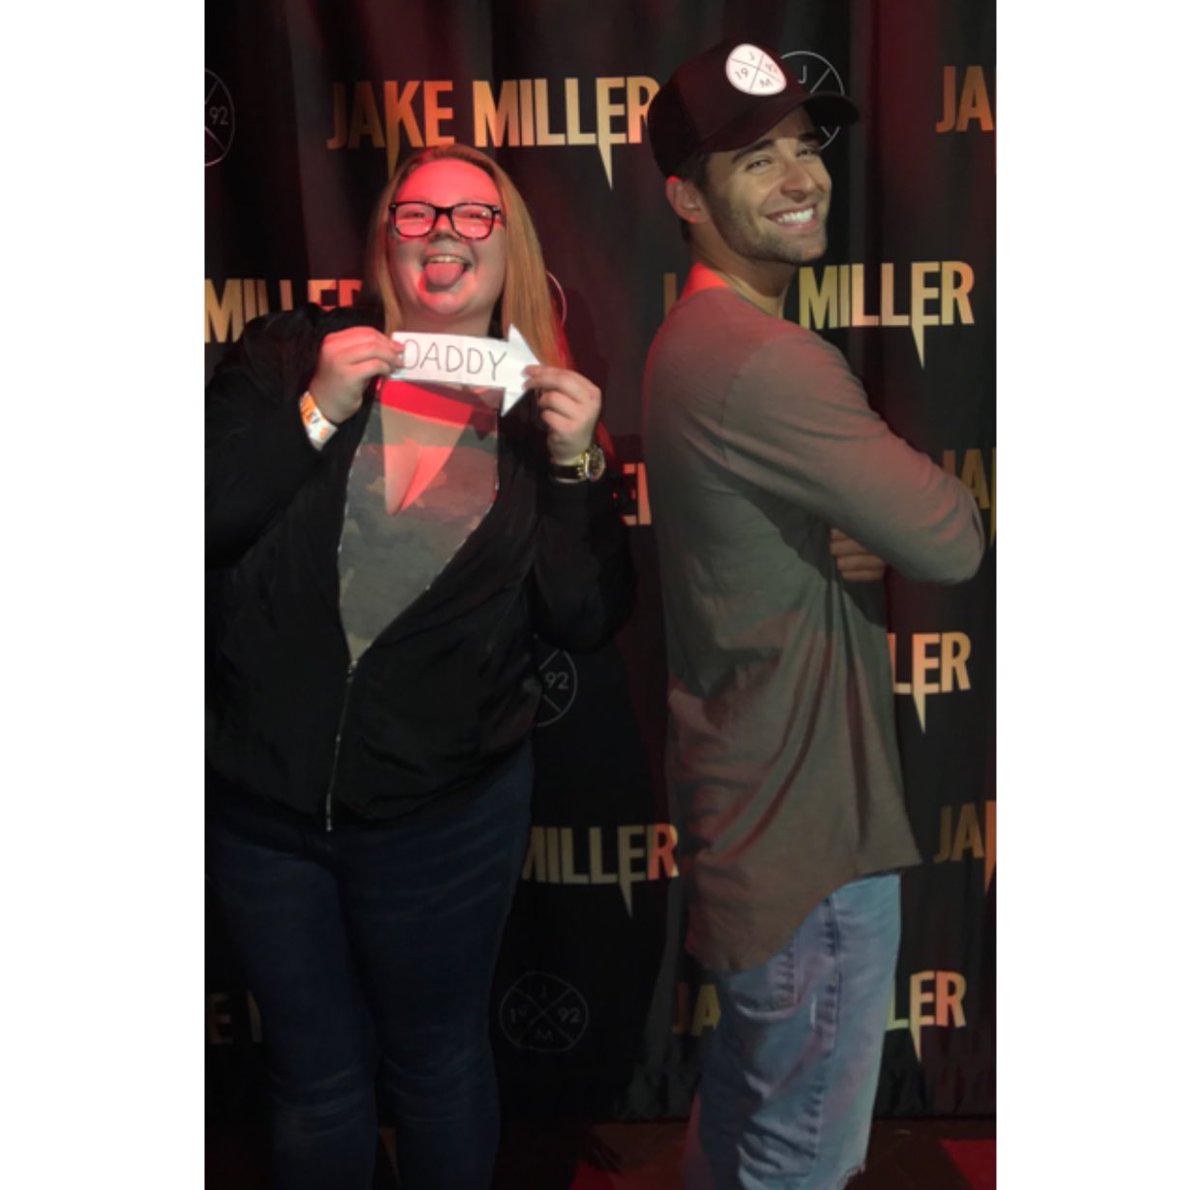 Y&#39;all said I wouldn&#39;t @jakemiller #Daddy  <br>http://pic.twitter.com/8mwxnJ0e1A